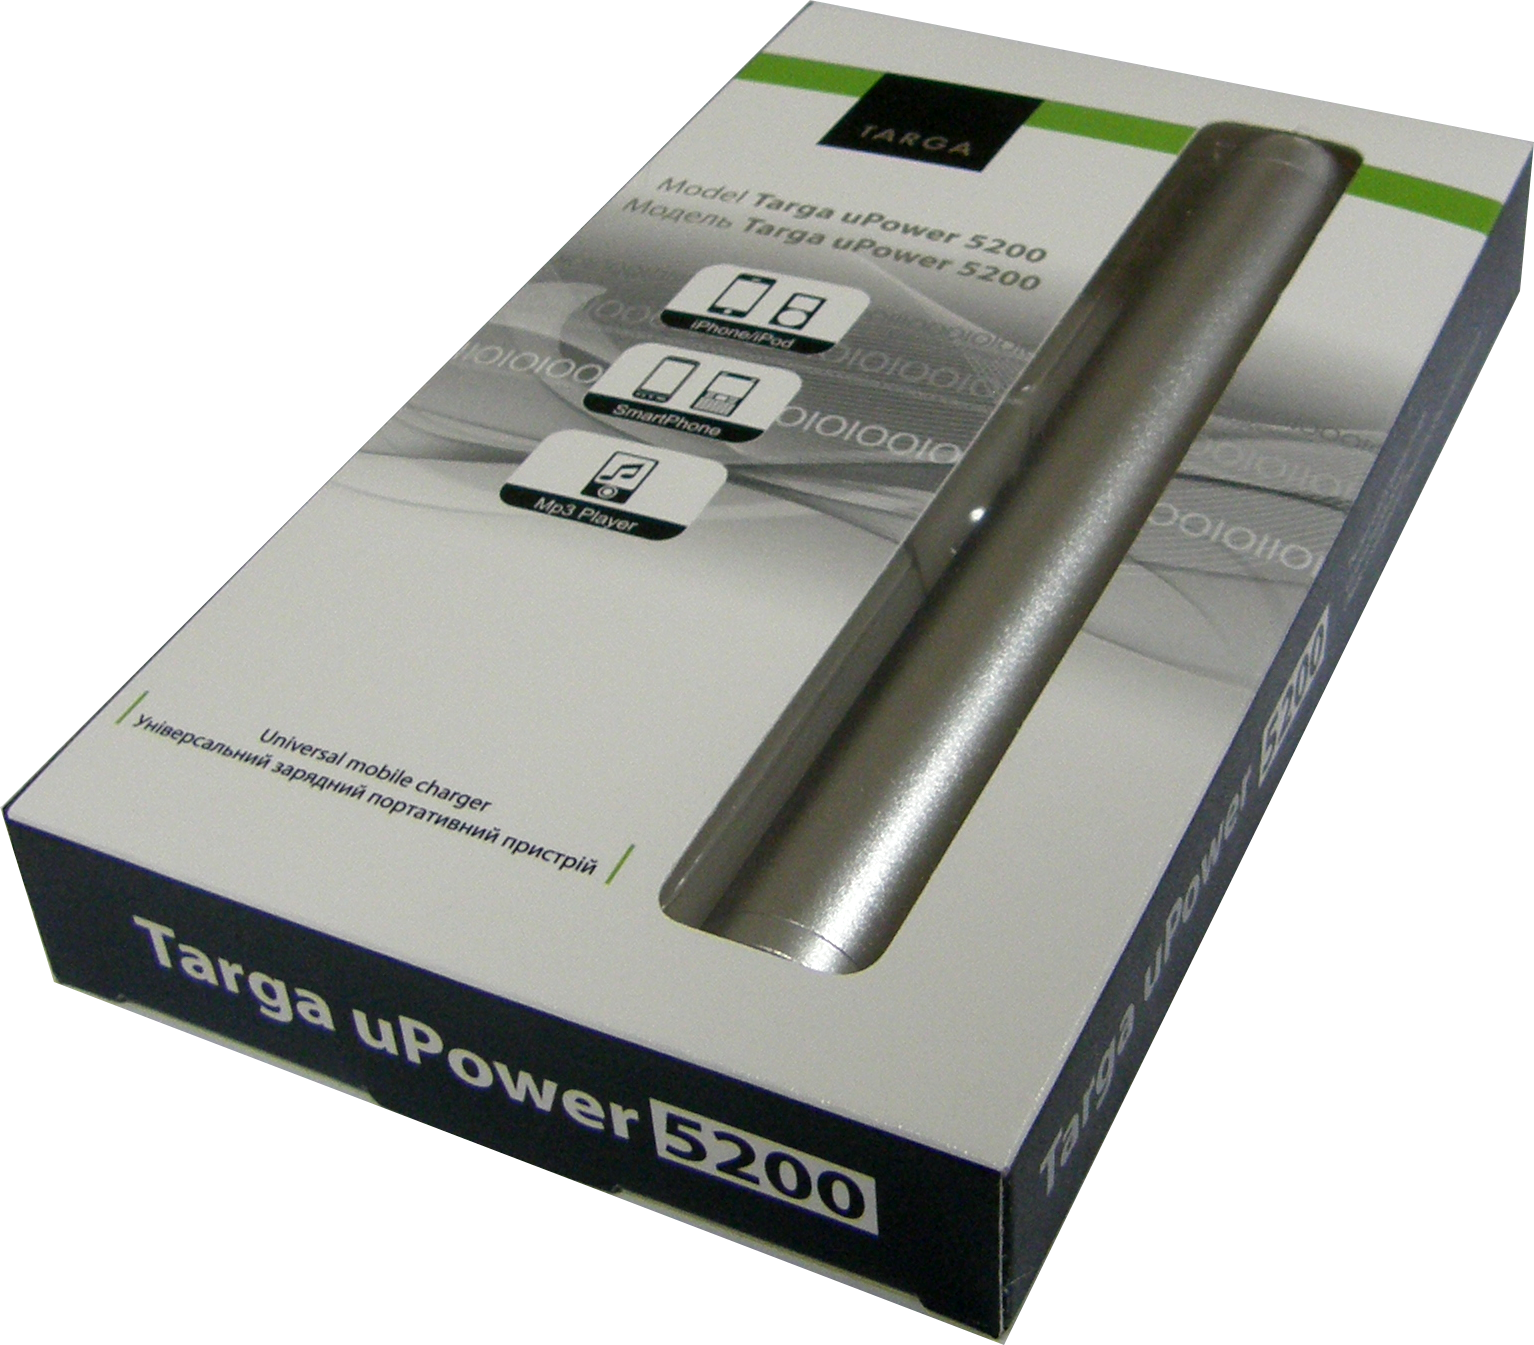 upower5200_box